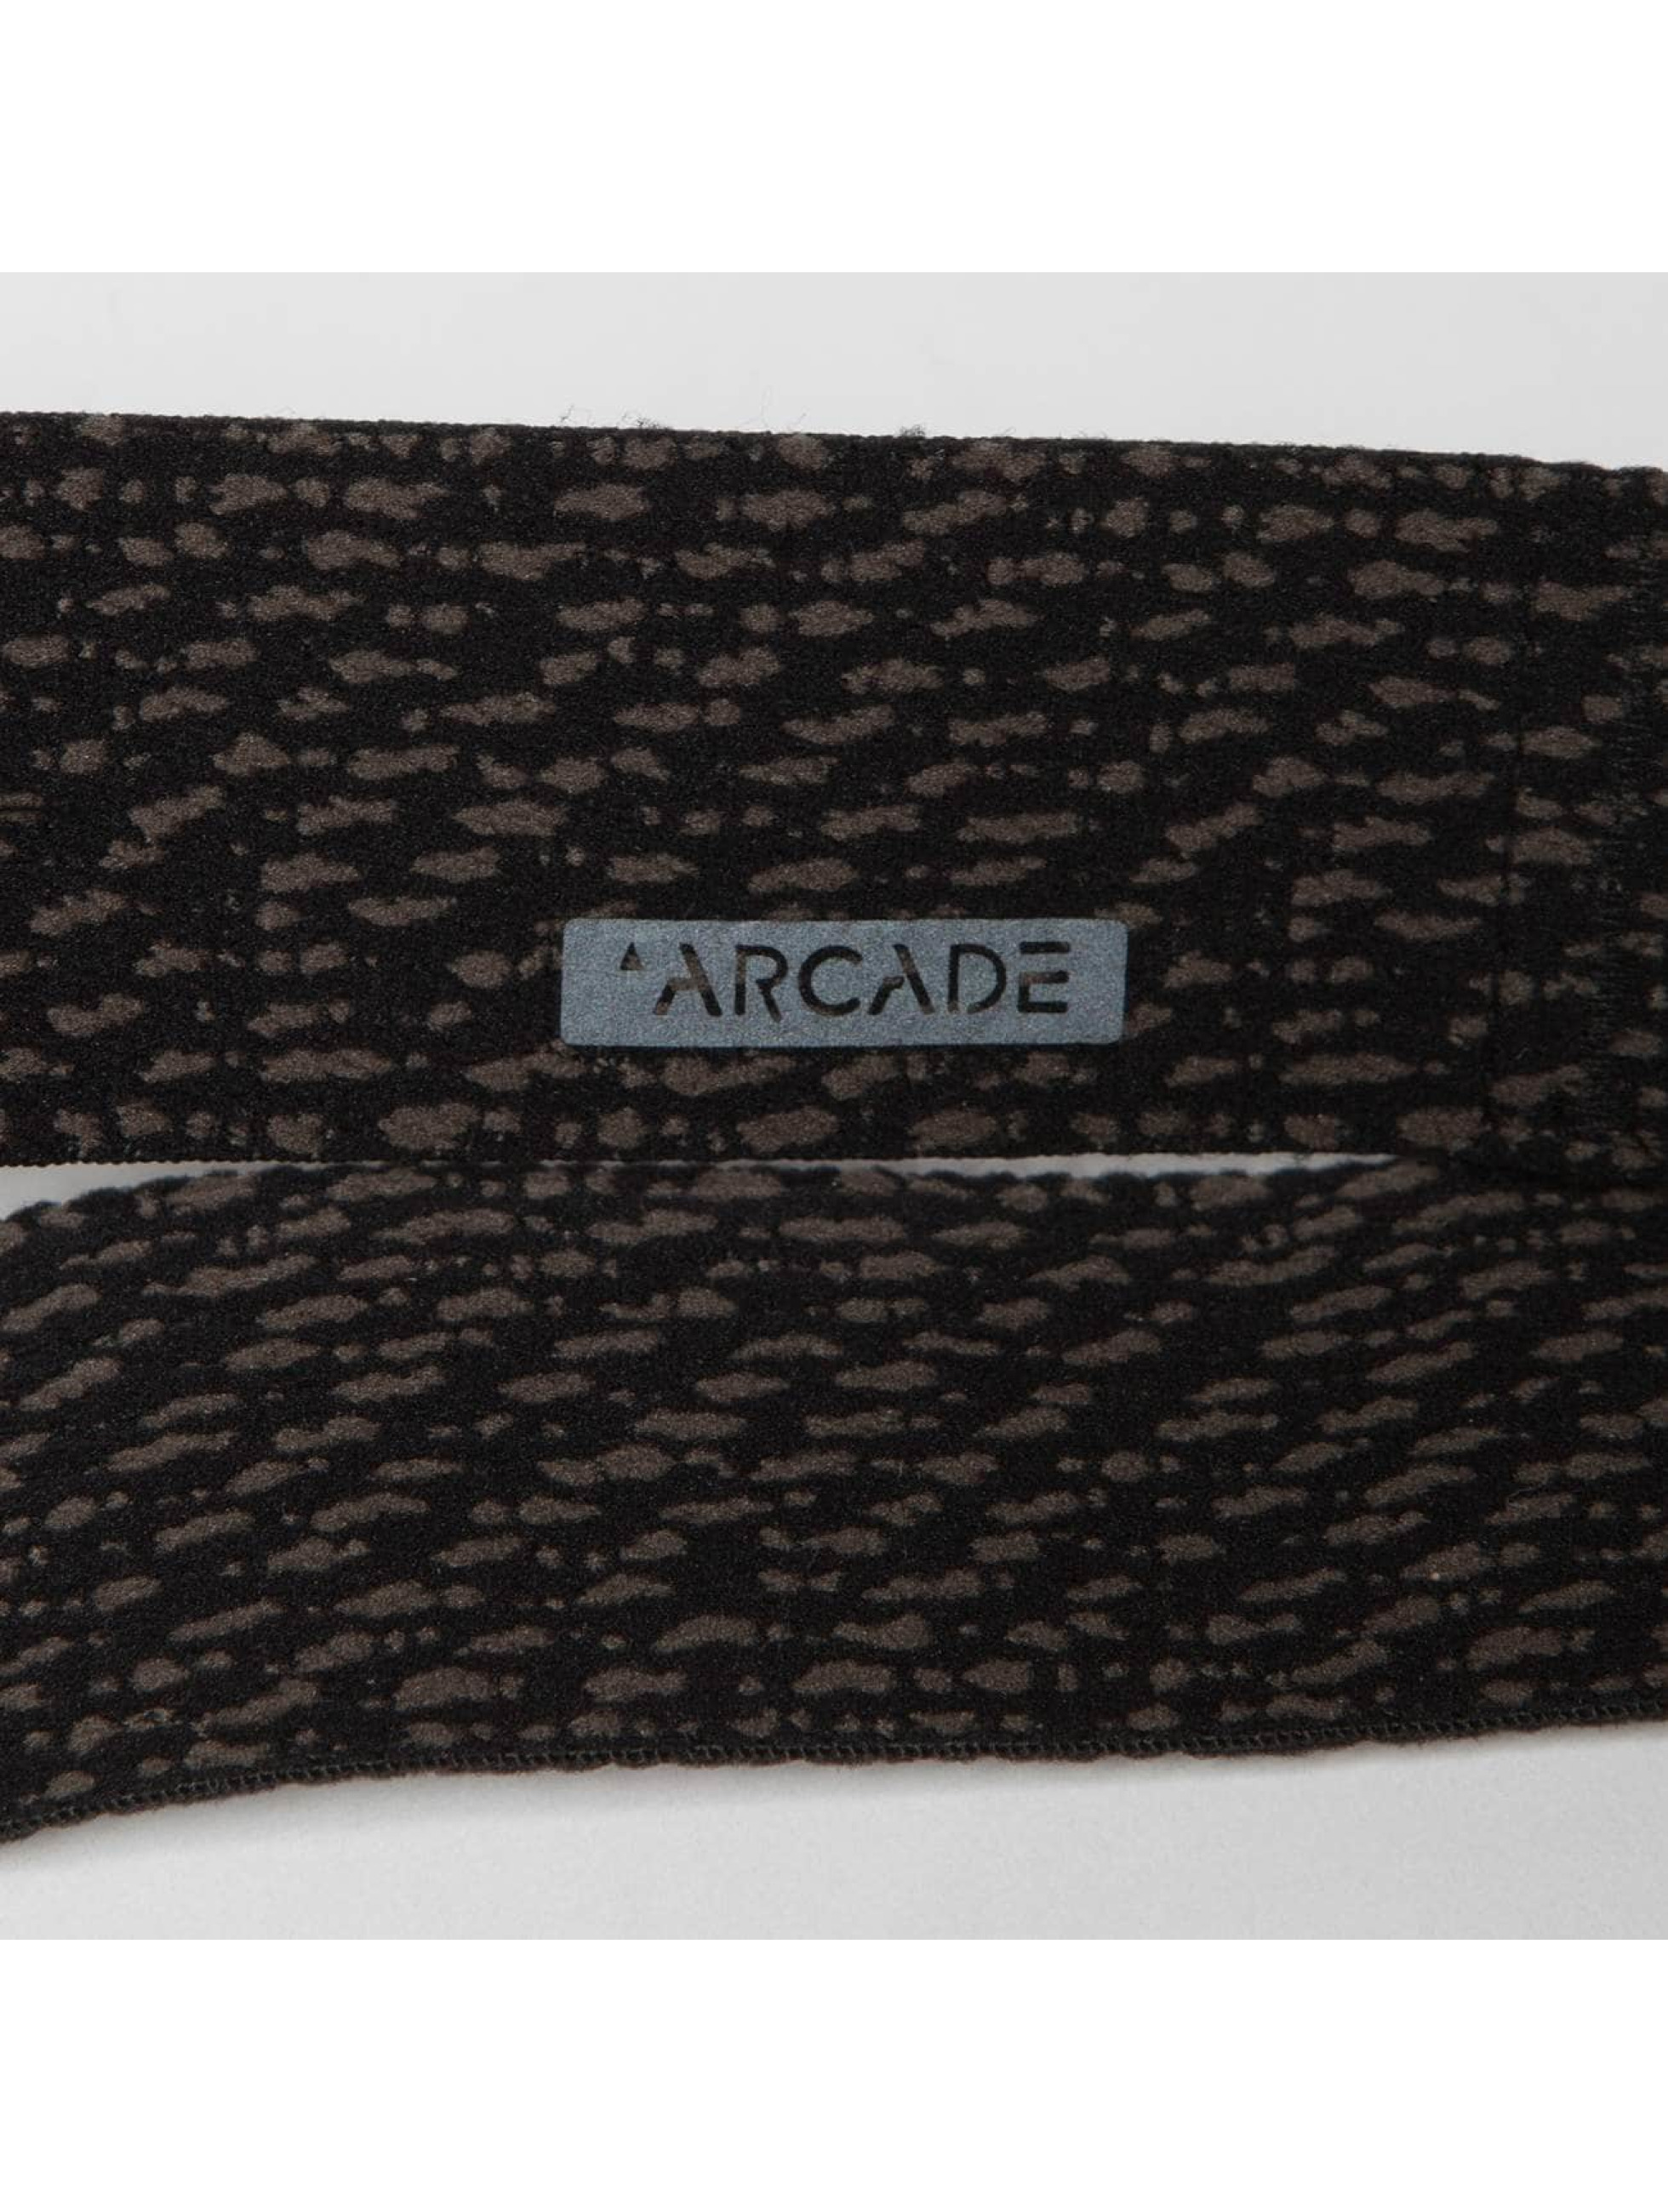 ARCADE Belts Performance Static svart